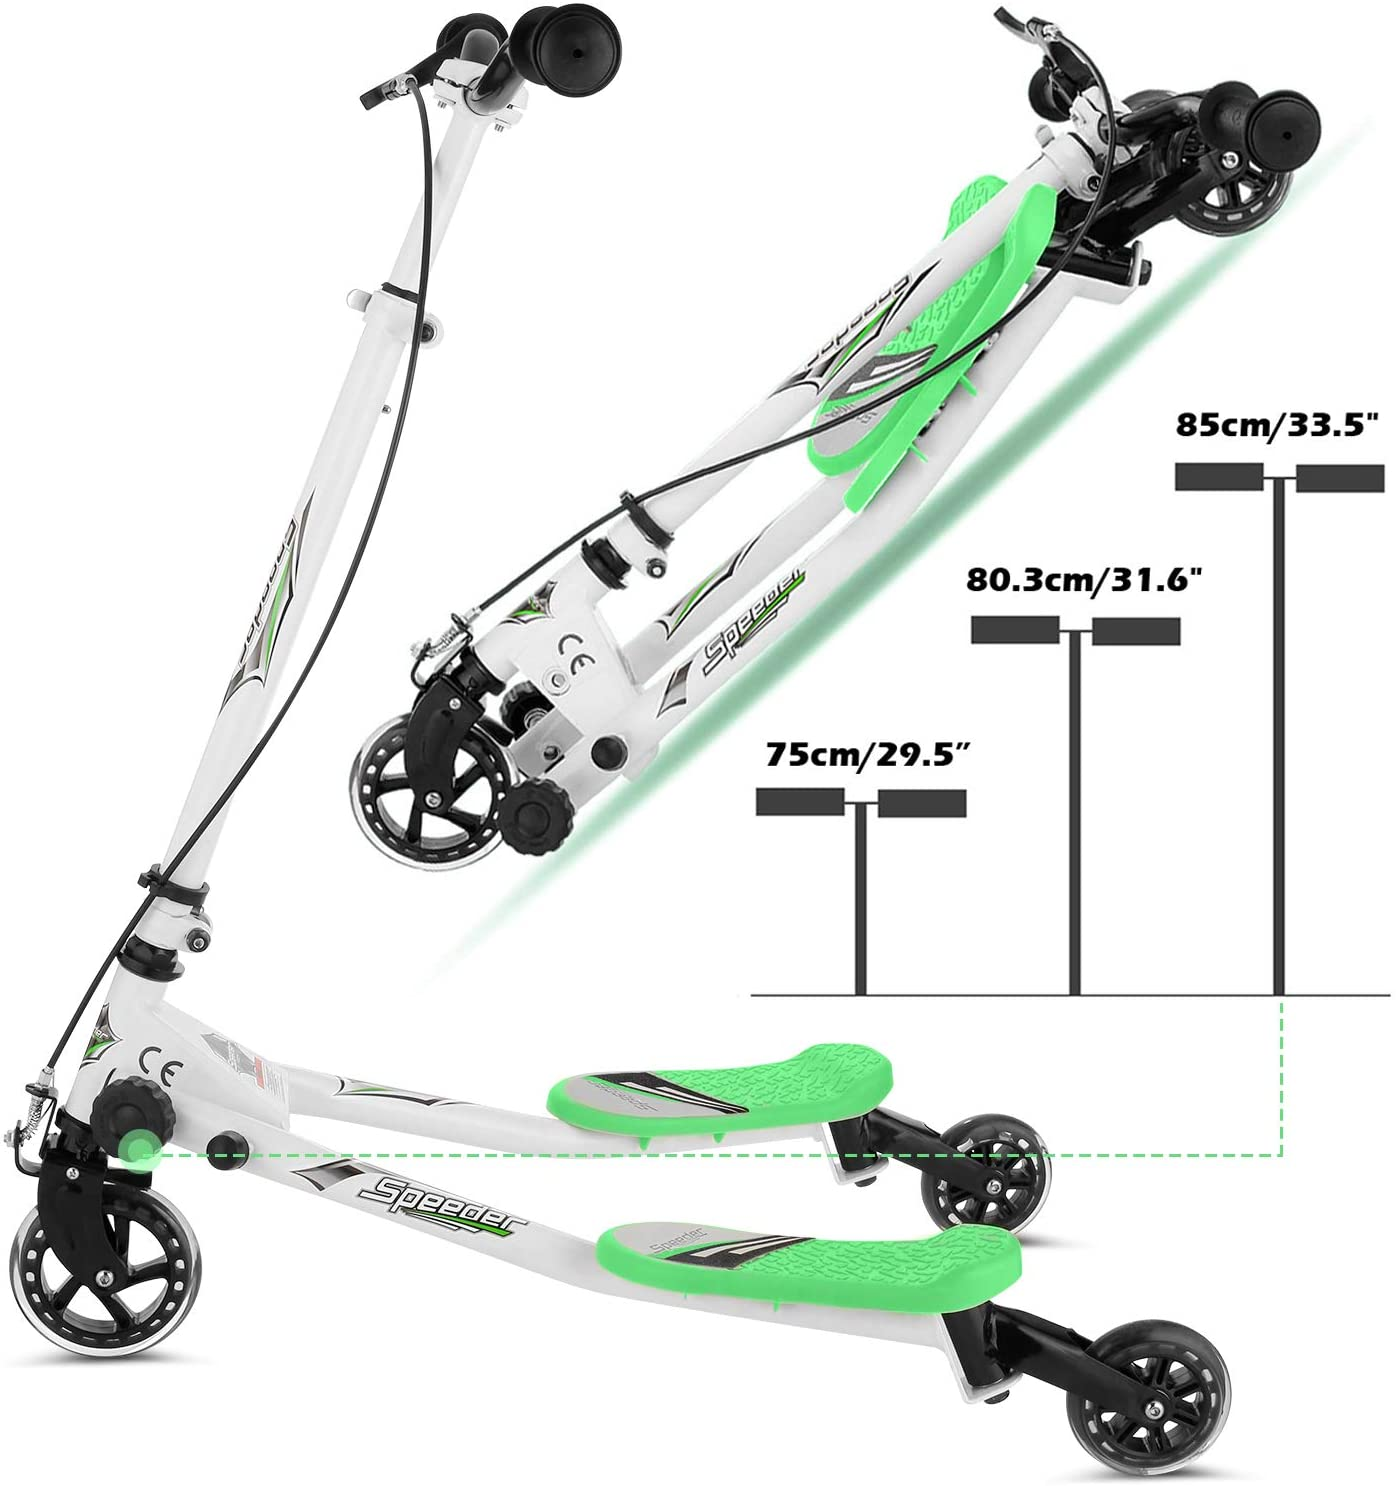 Rampmu Y Flicker Scooter, Wiggle Scooter for Kids, 3 Wheels Push Swing Scooter Foldable Speeder Tri Slider Kickboard for Ages 5-8